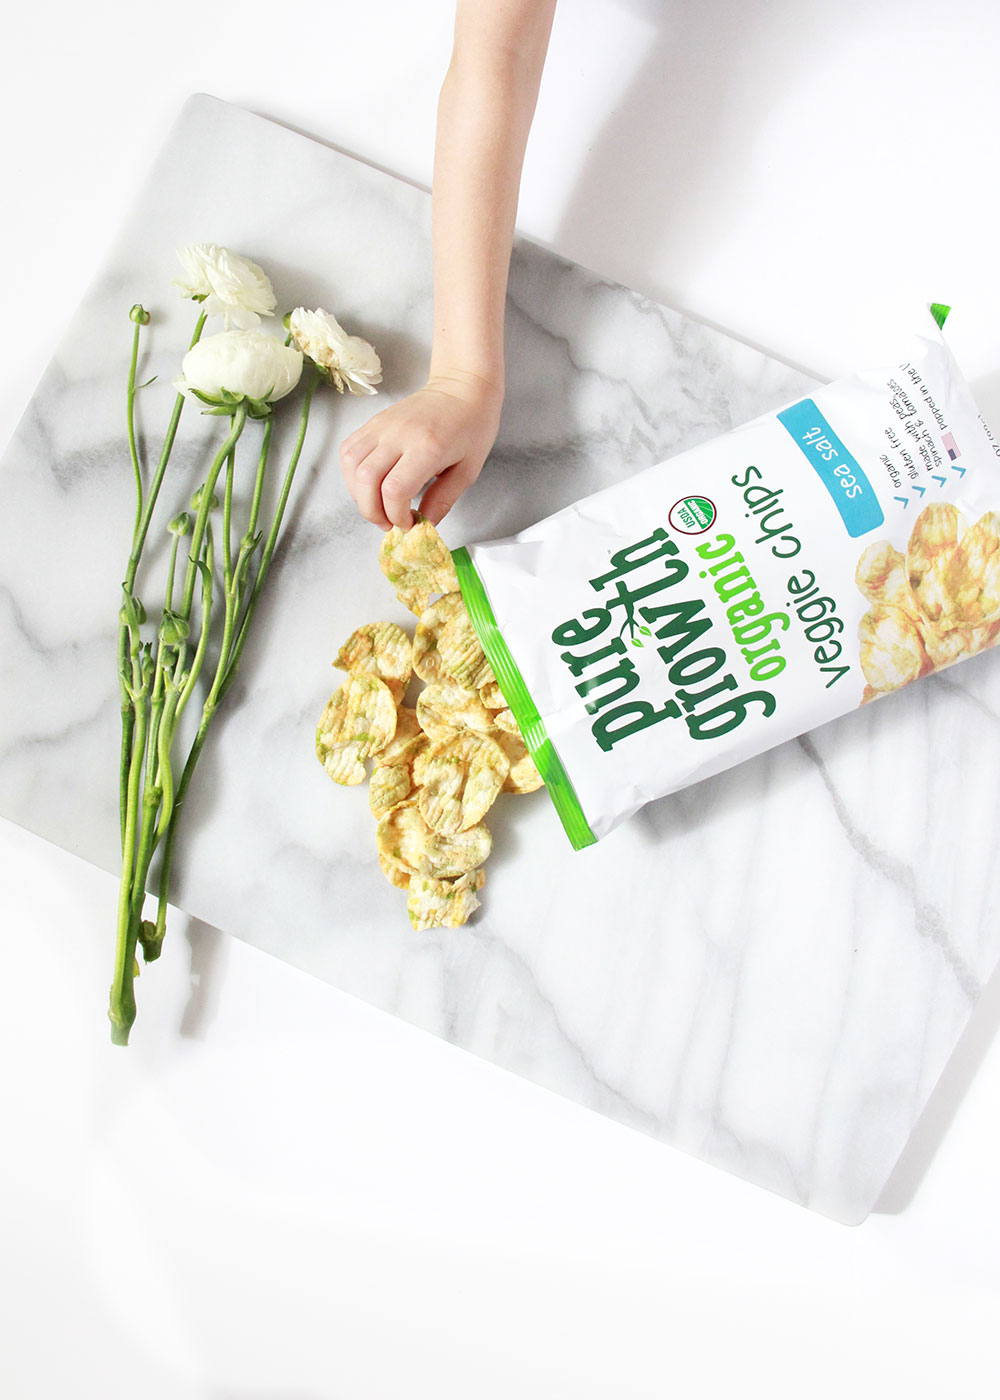 pure growth organic snack attack | thelovedesignedlife.com